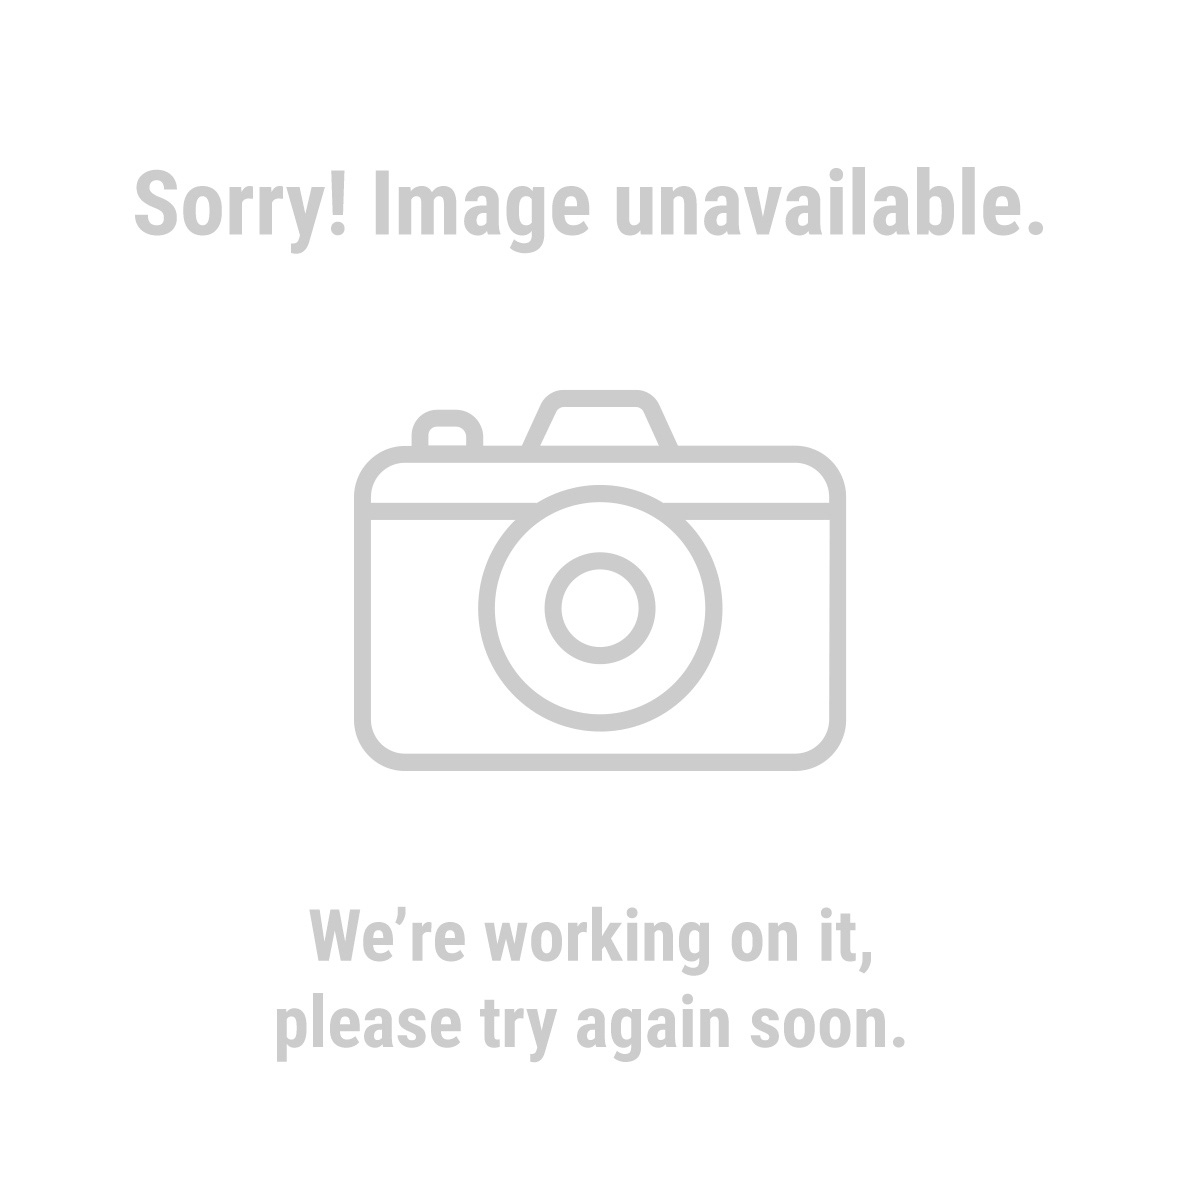 "HFT 2111 19 ft. x 39 ft. 4"" All Purpose Weather Resistant Tarp"